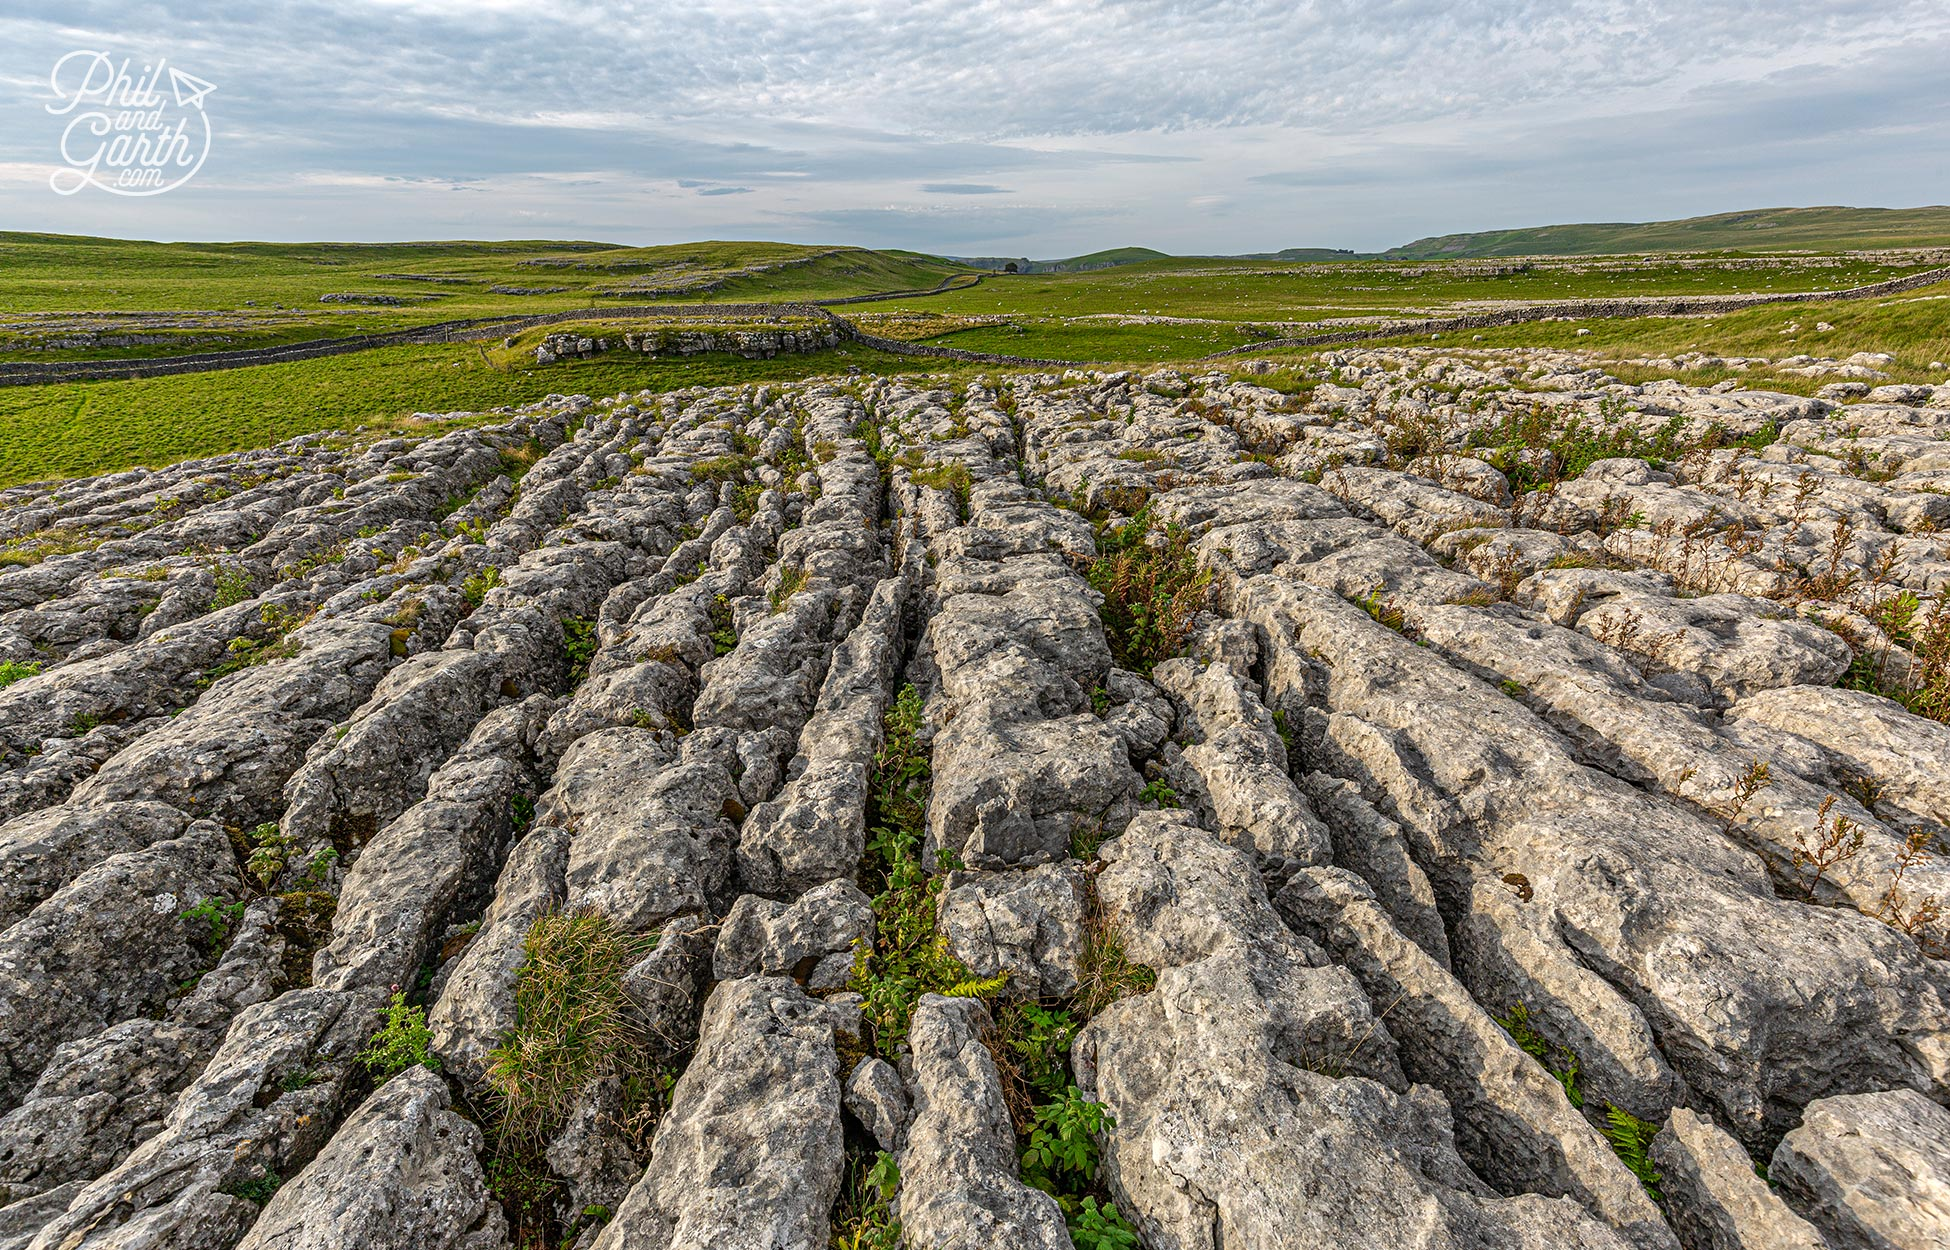 Limestone pavements are made up of clints (blocks) and grikes (fissures)